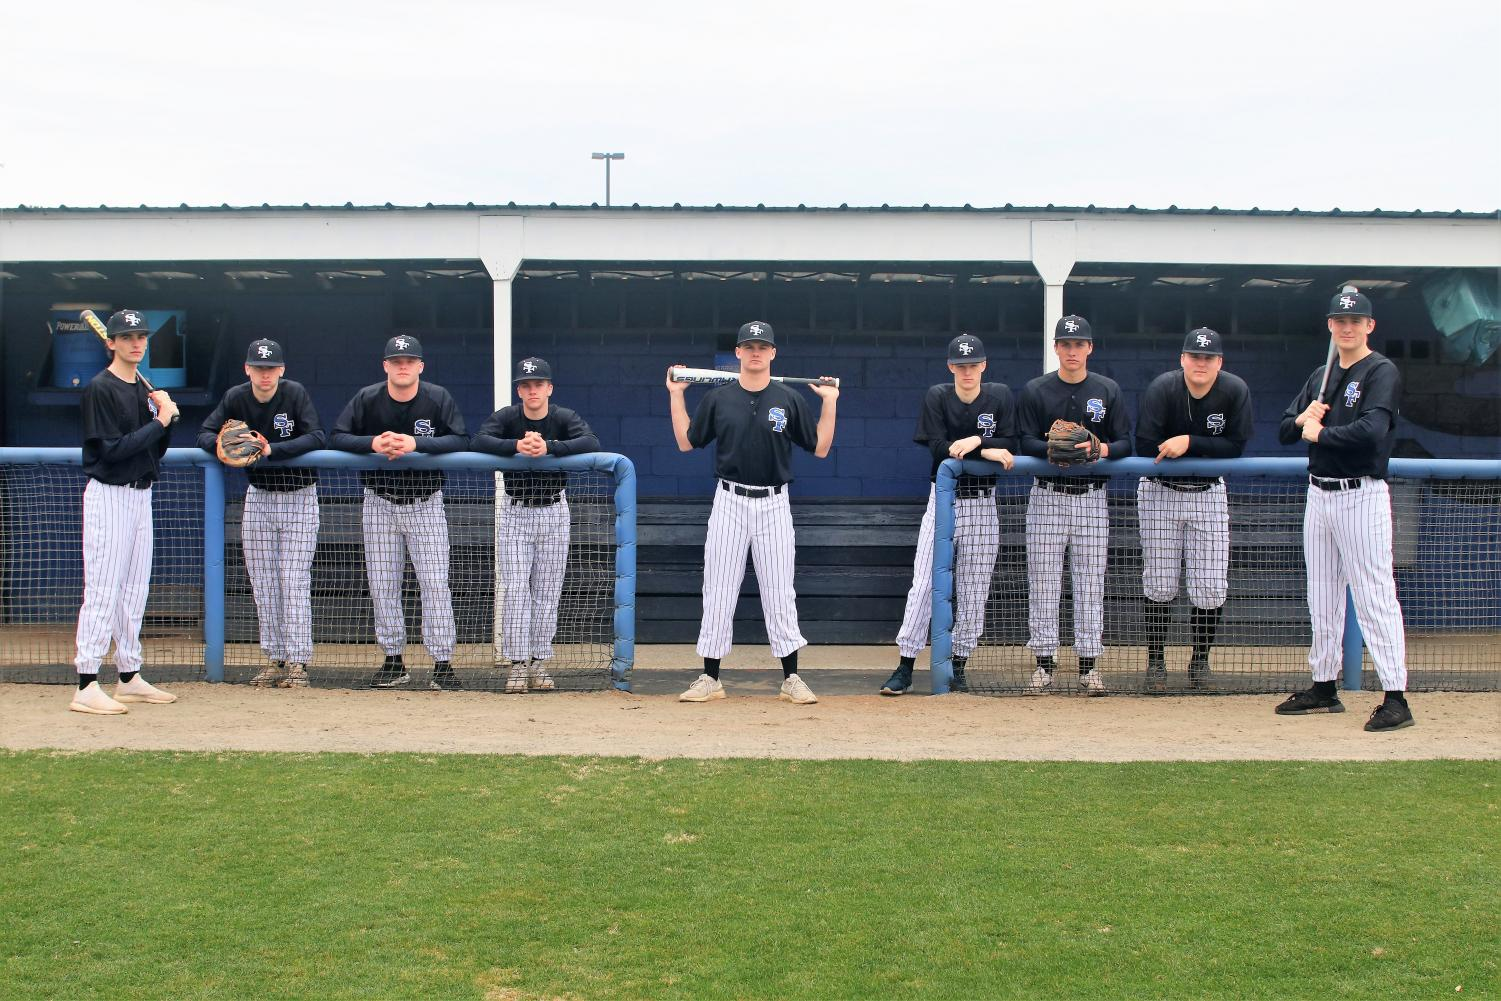 Lining up to bat. South's boy's baseball team is preparing for a new season by fundraising and hitting the field for practice. Players left to right: Peyton Presley, Colby Wheeler, Landon Sims, Jake Witterman, Dylan Mazzei, Cameron Fox, Cole Kliphouse, Tyler Cowan, Steven Thompson.